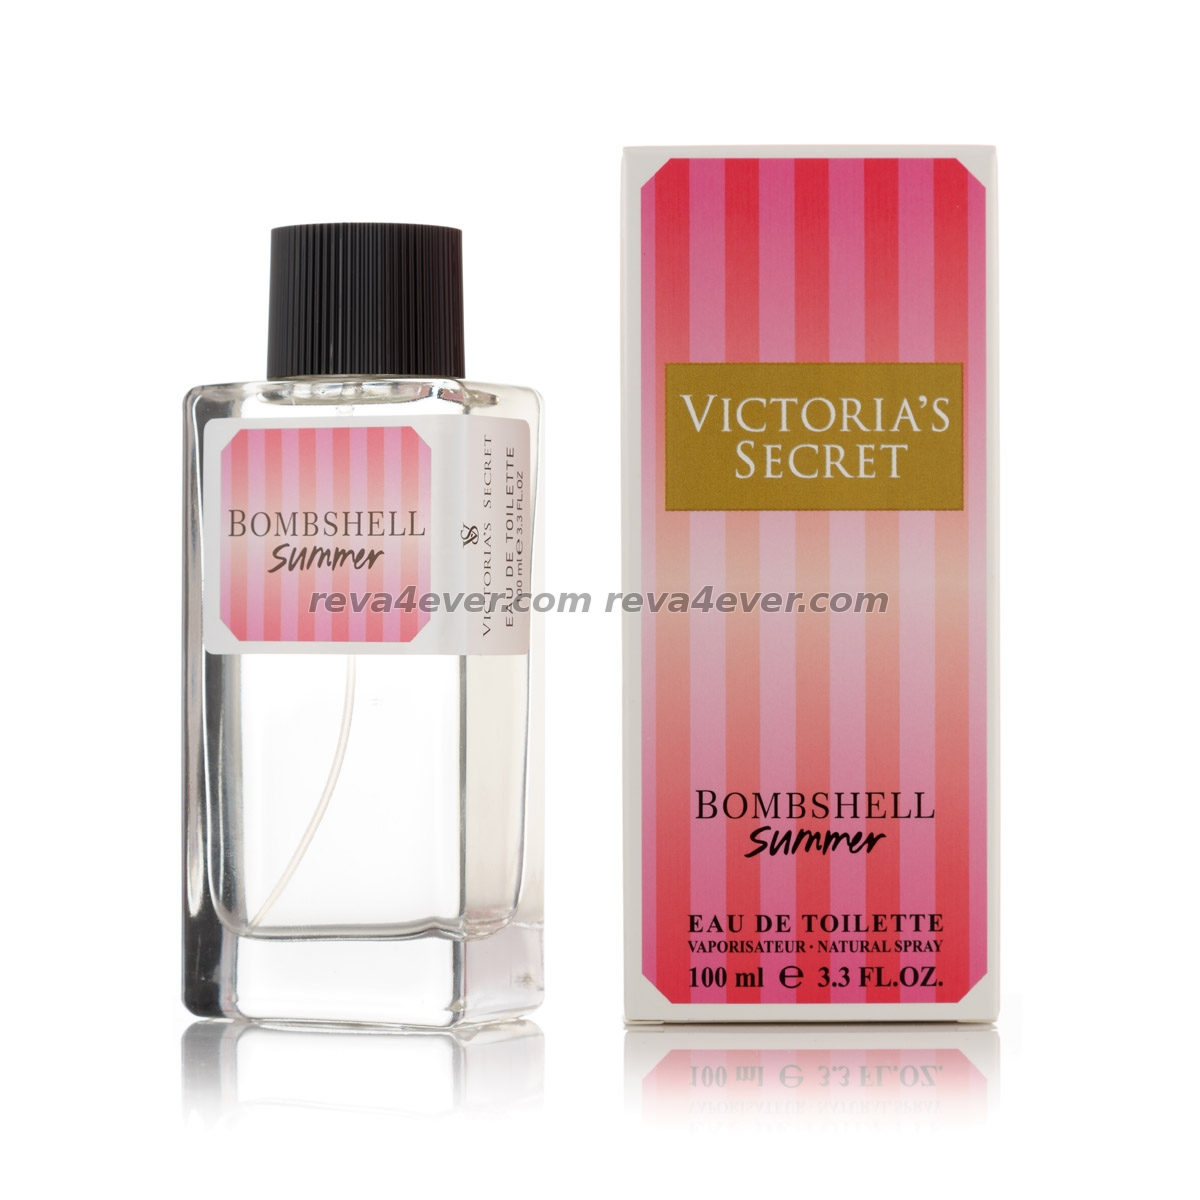 Victoria's Secret Bombshell Summer edp 100ml Imperatrice style